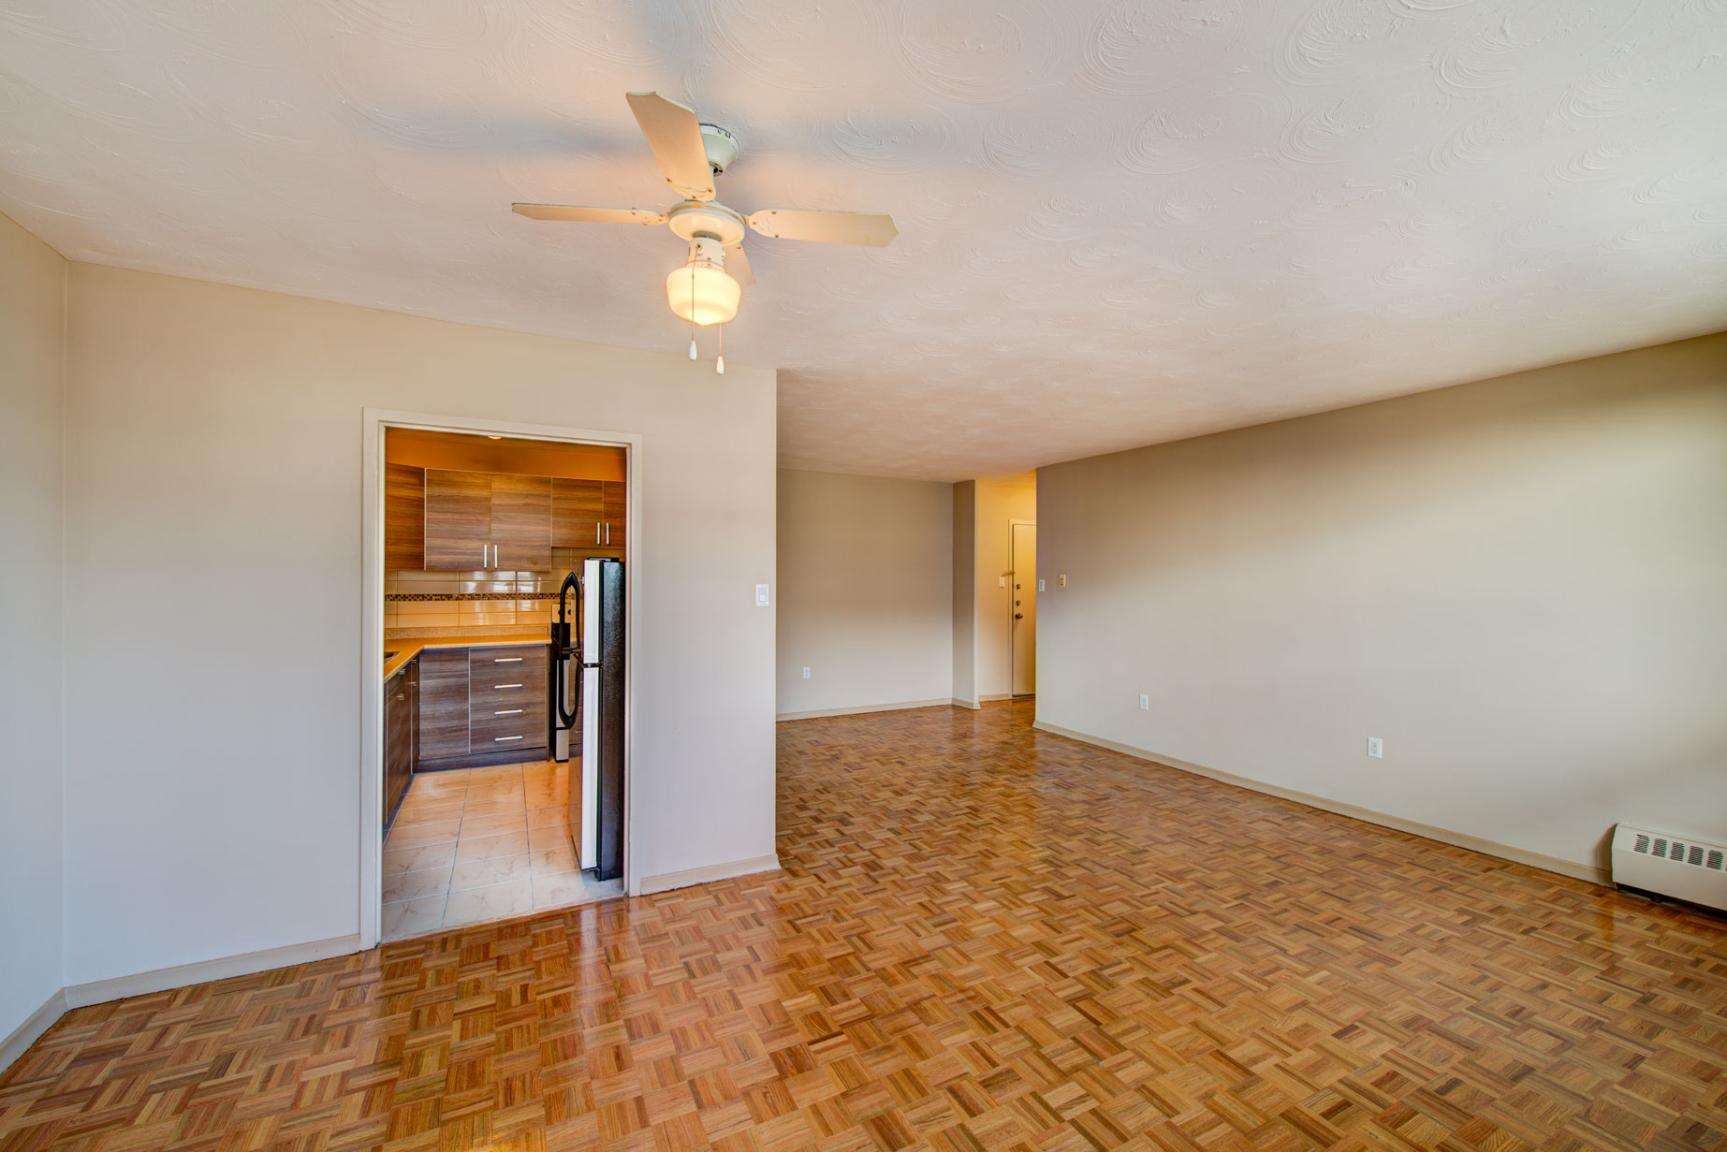 1 bedroom Apartments for rent in Mississauga at Bristol Arms Apartments - Photo 09 - RentersPages – L138729